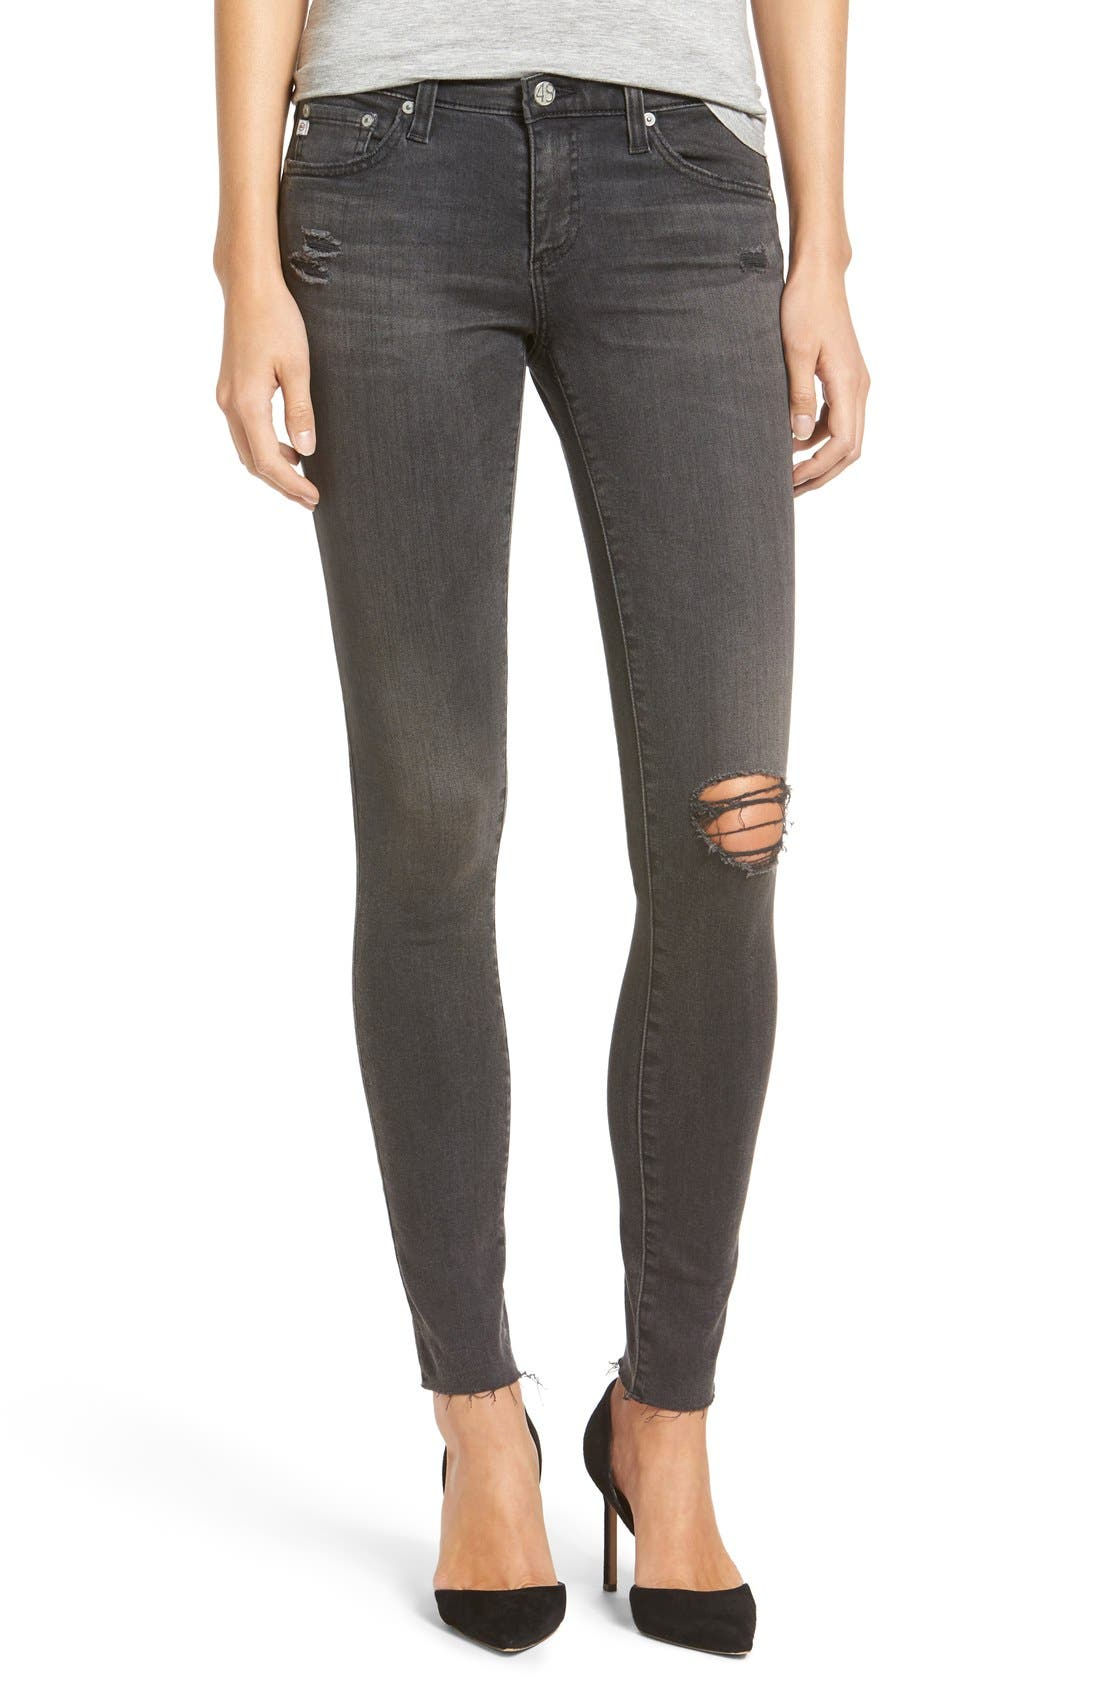 Alternate Image 1 Selected - AG The Legging Ripped Super Skinny Jeans (10 Year Well Worn)